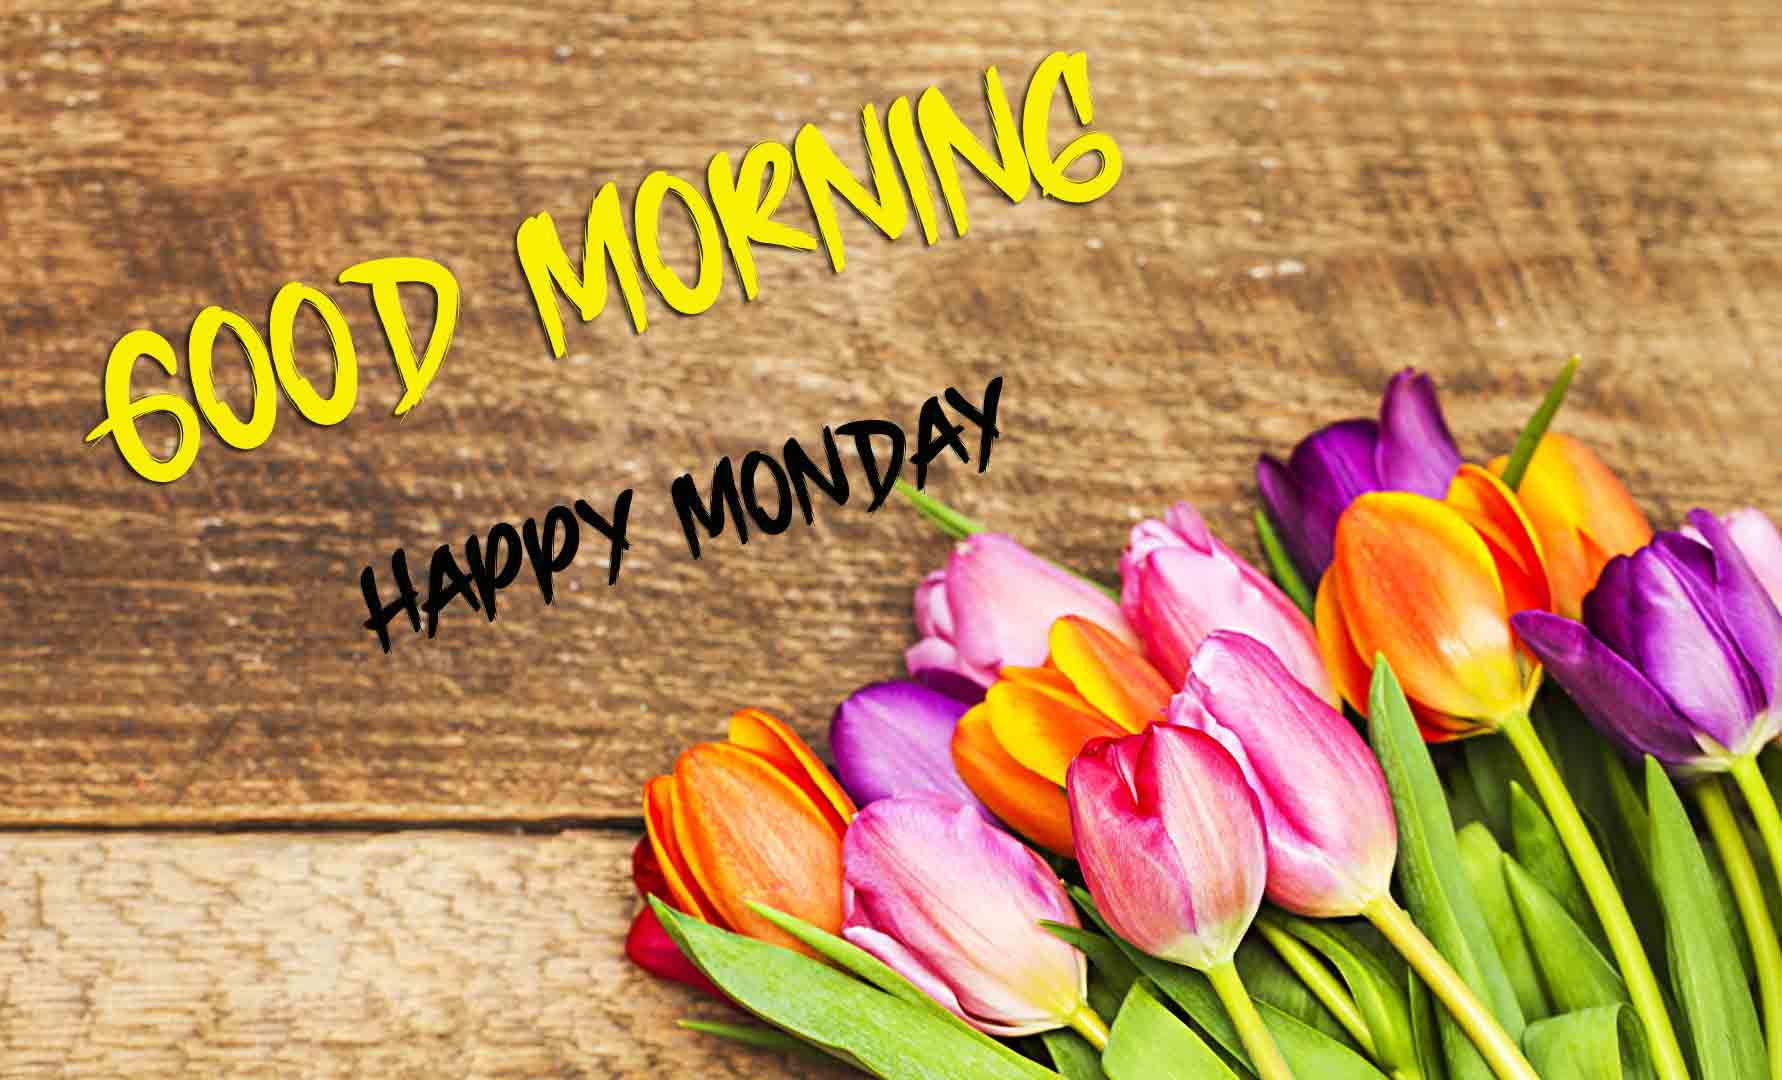 Best Monday Good Morning Images photo for friends